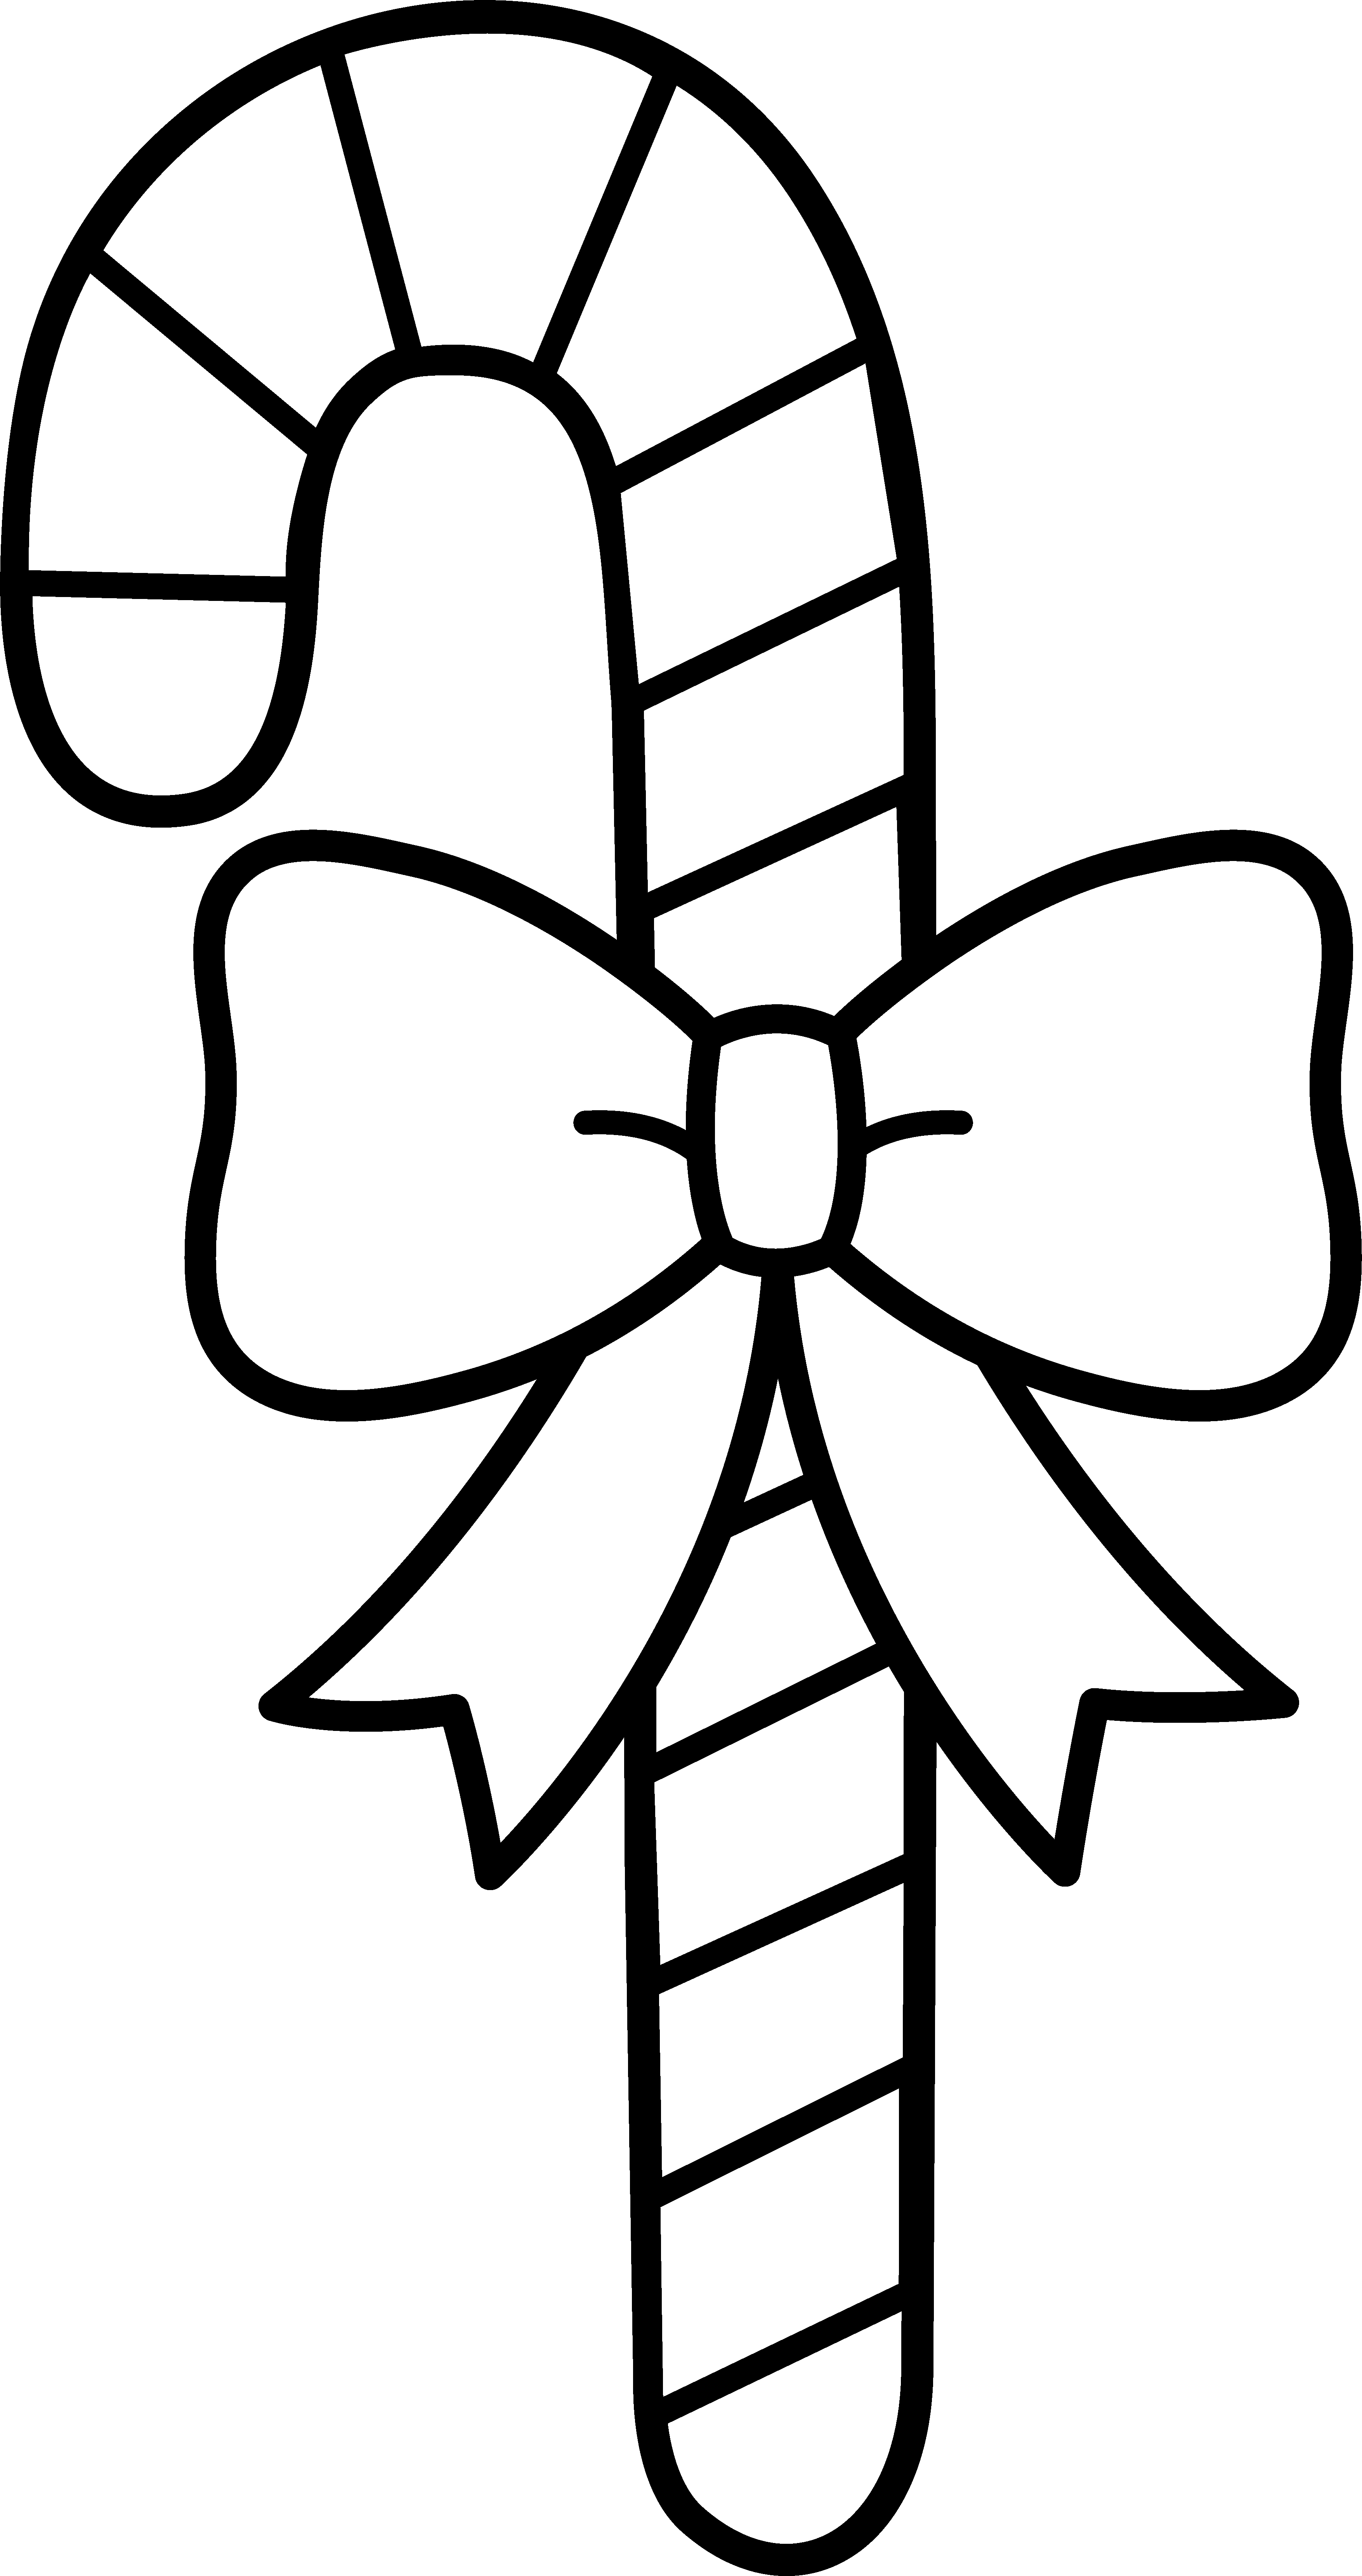 3509x6636 Candy Cane With Bow Line Art